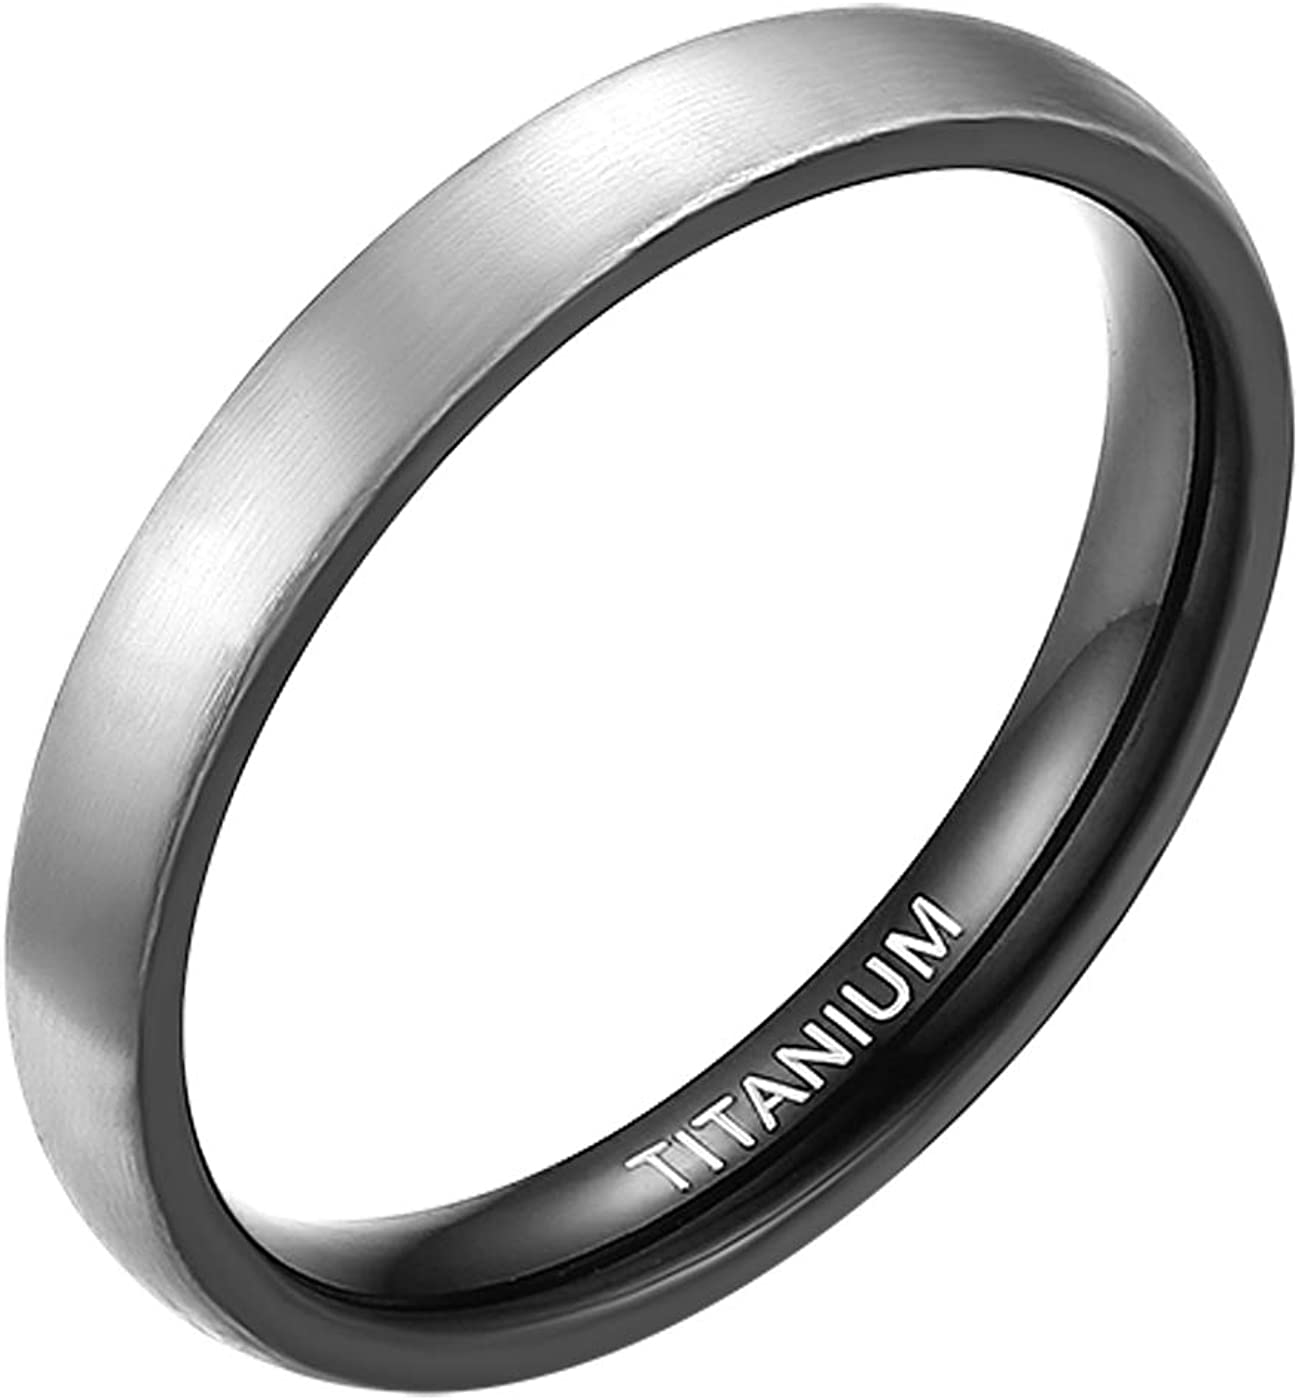 MABOHITY 3mm 4mm 6mm 7mm 8mm Titanium Rings Black Matte Brushed Domed Wedding Bands for Men Women Size 4-15